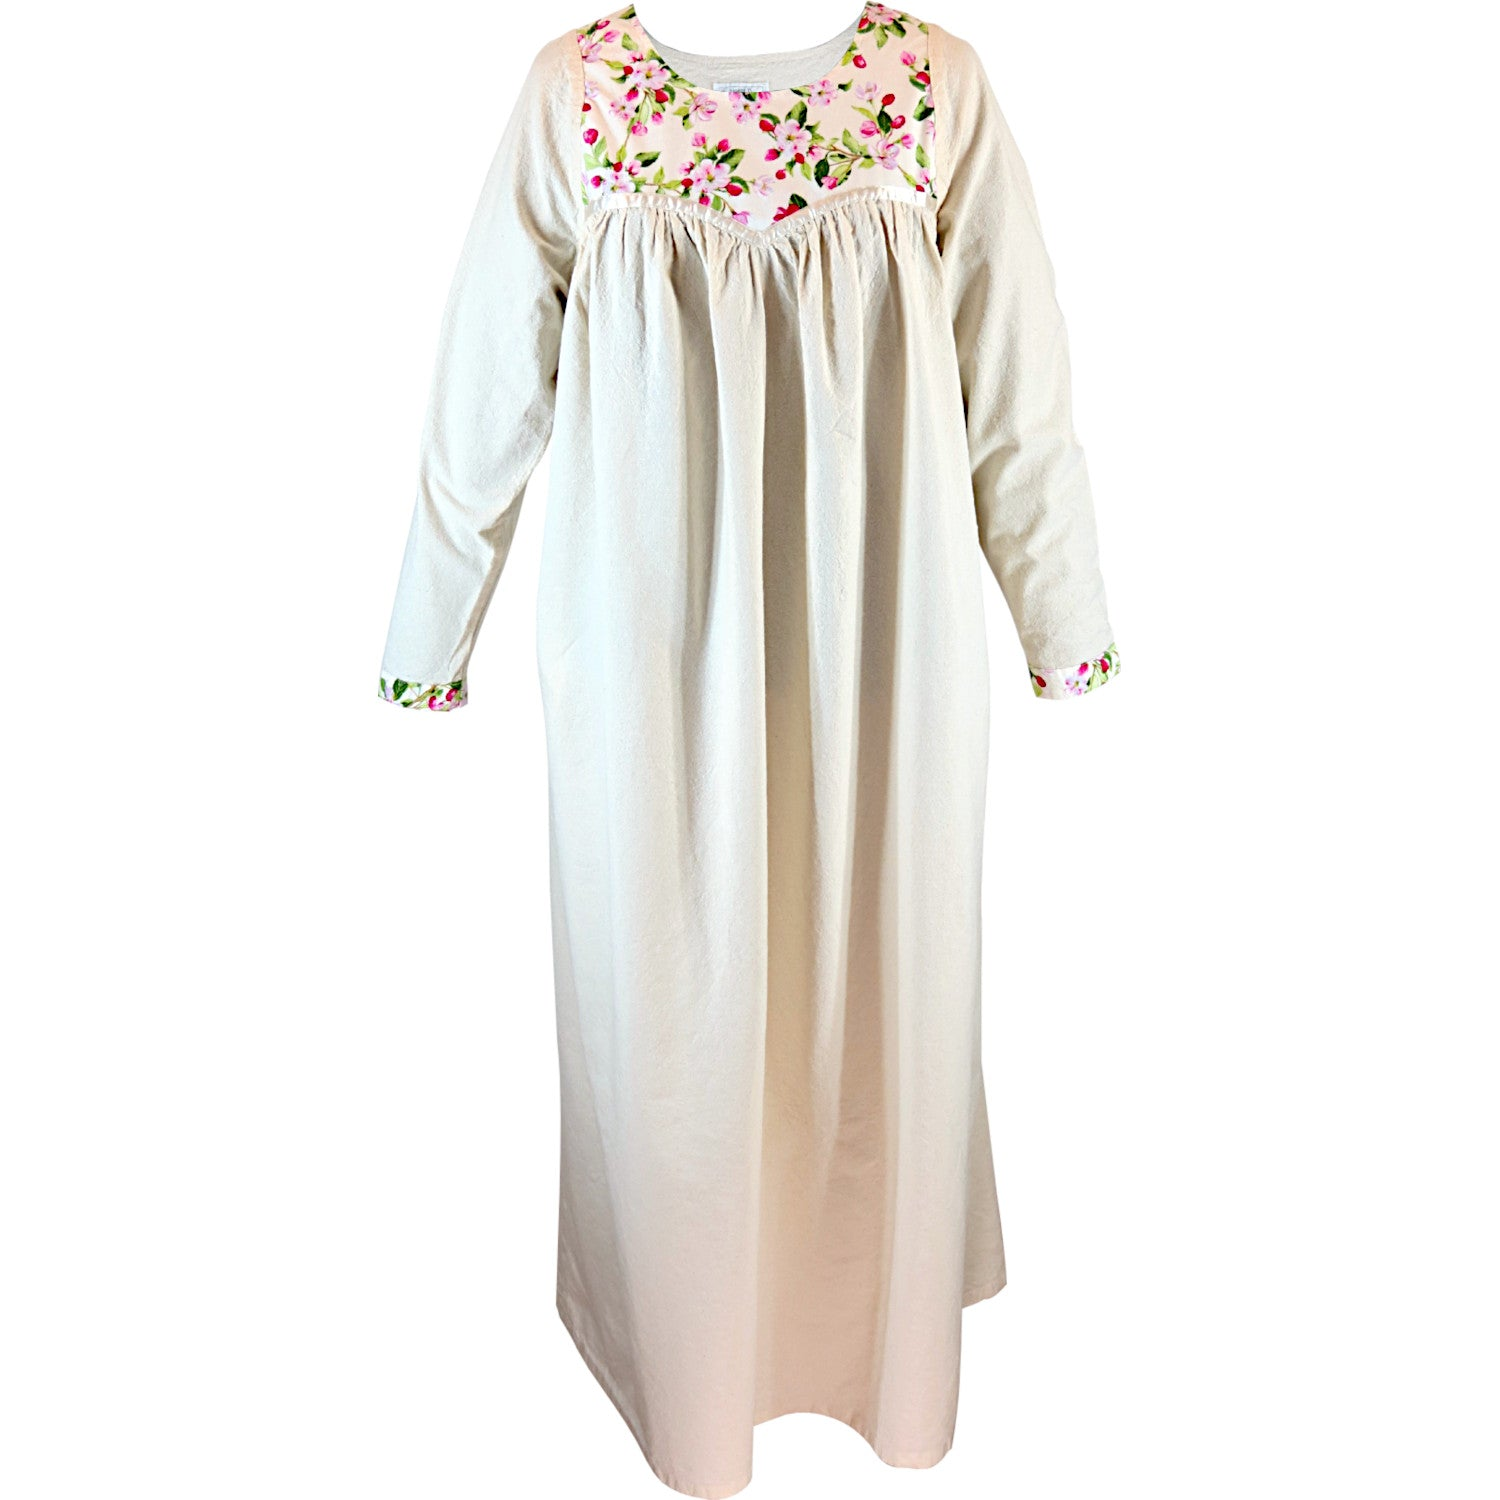 Cotton gown, long sleeves, Apple blossom pattern, front view.